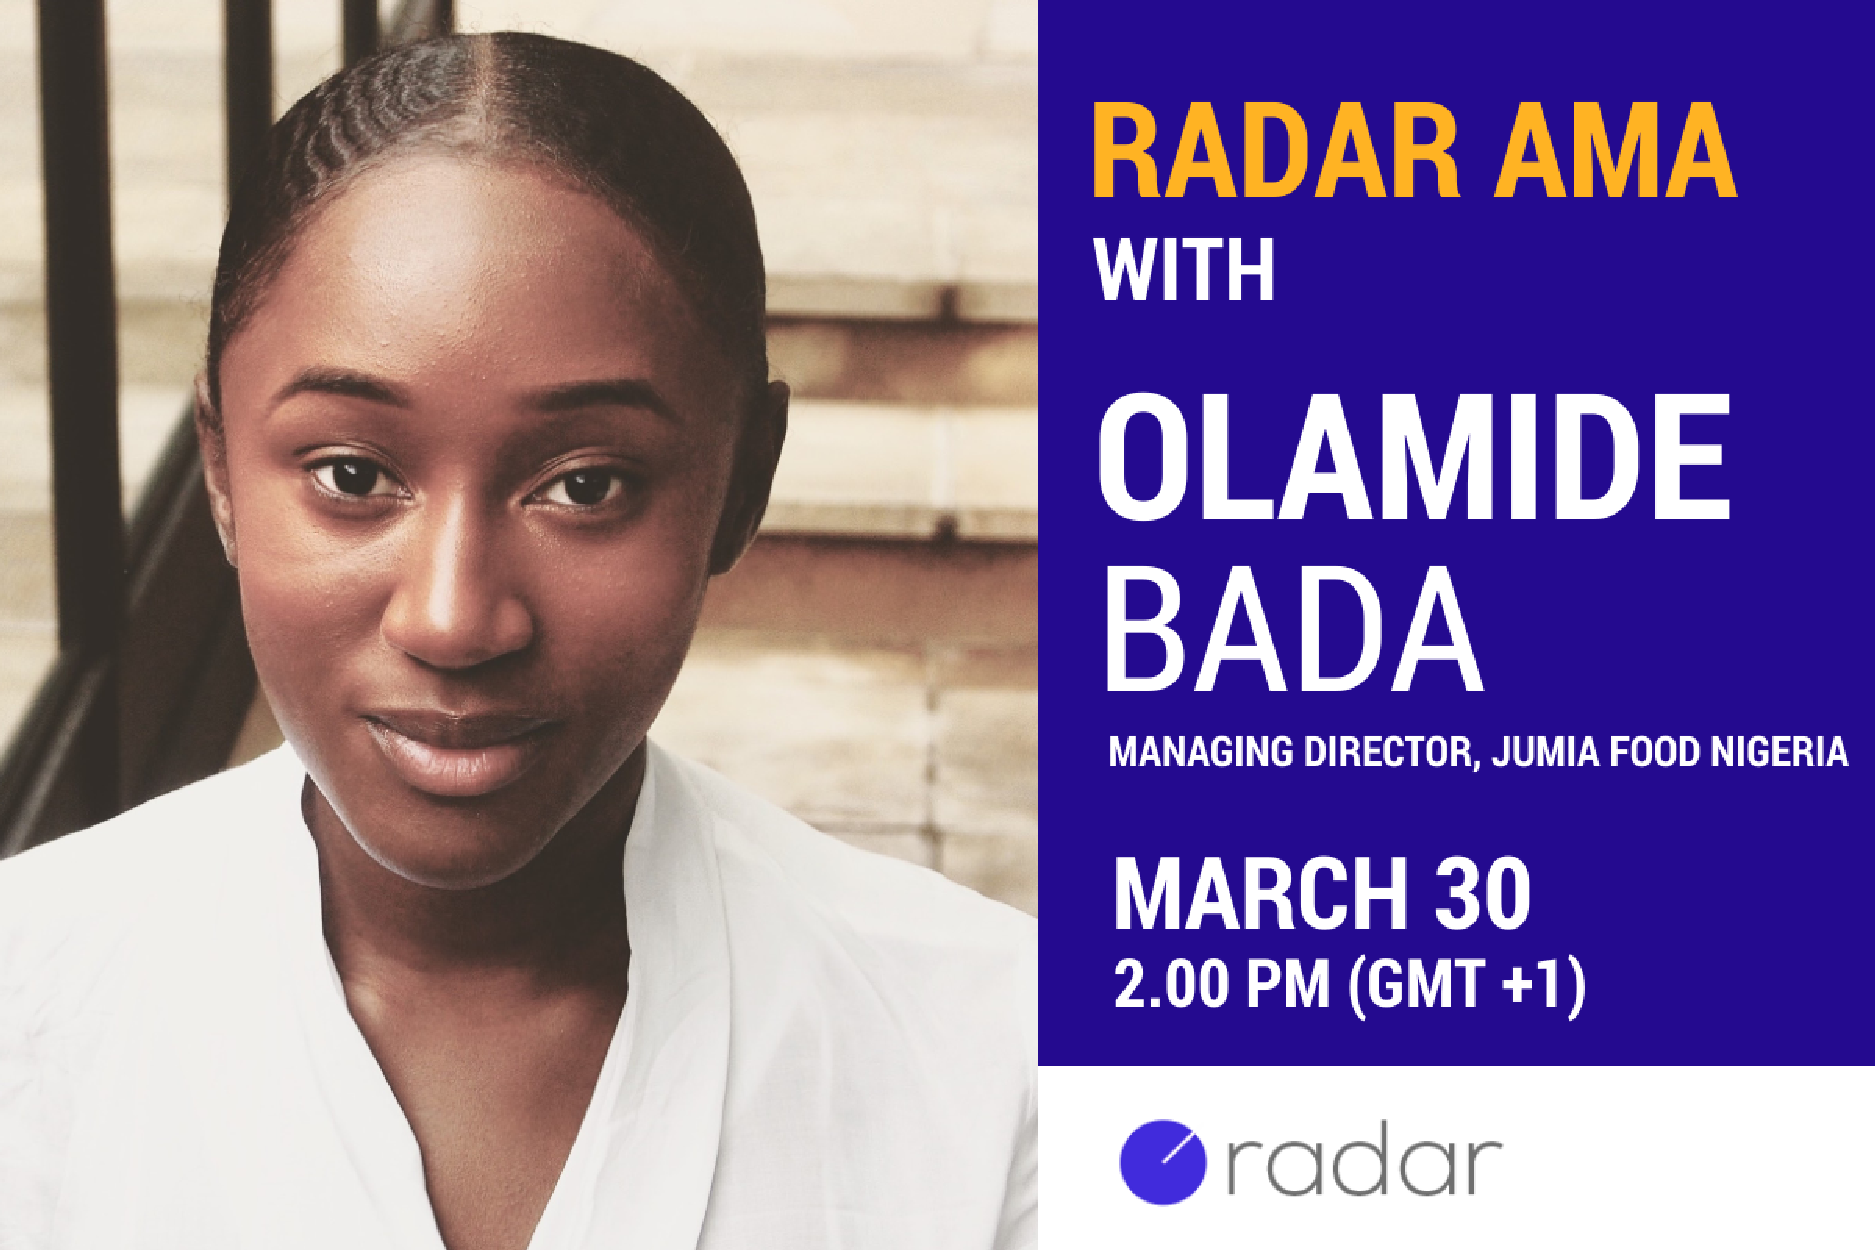 Join us for an AMA with Olamide Bada, Managing Director of Jumia Food Nigeria, this Thursday at 2pm